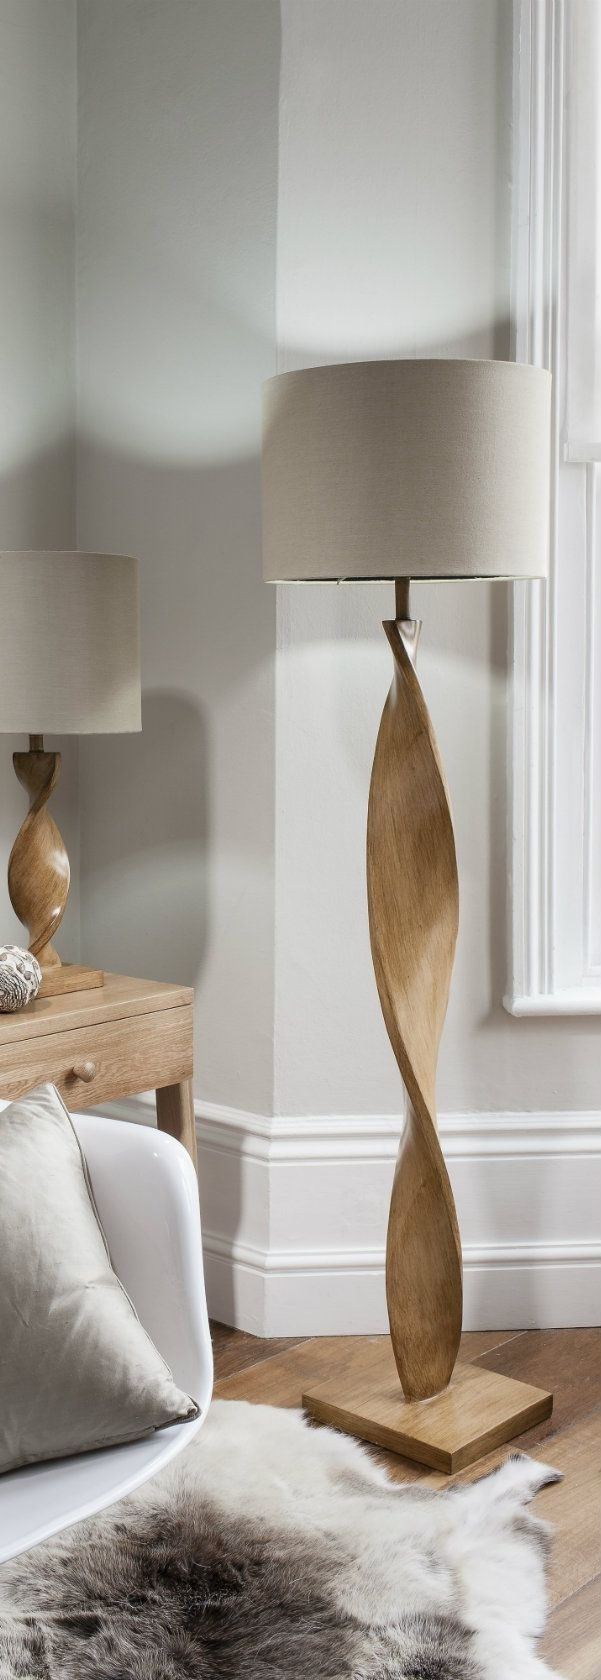 Inspiration about Living Room Lamp Ideas – Vitaminshoppe – Vitaminshoppe Regarding Houzz Living Room Table Lamps (#3 of 15)